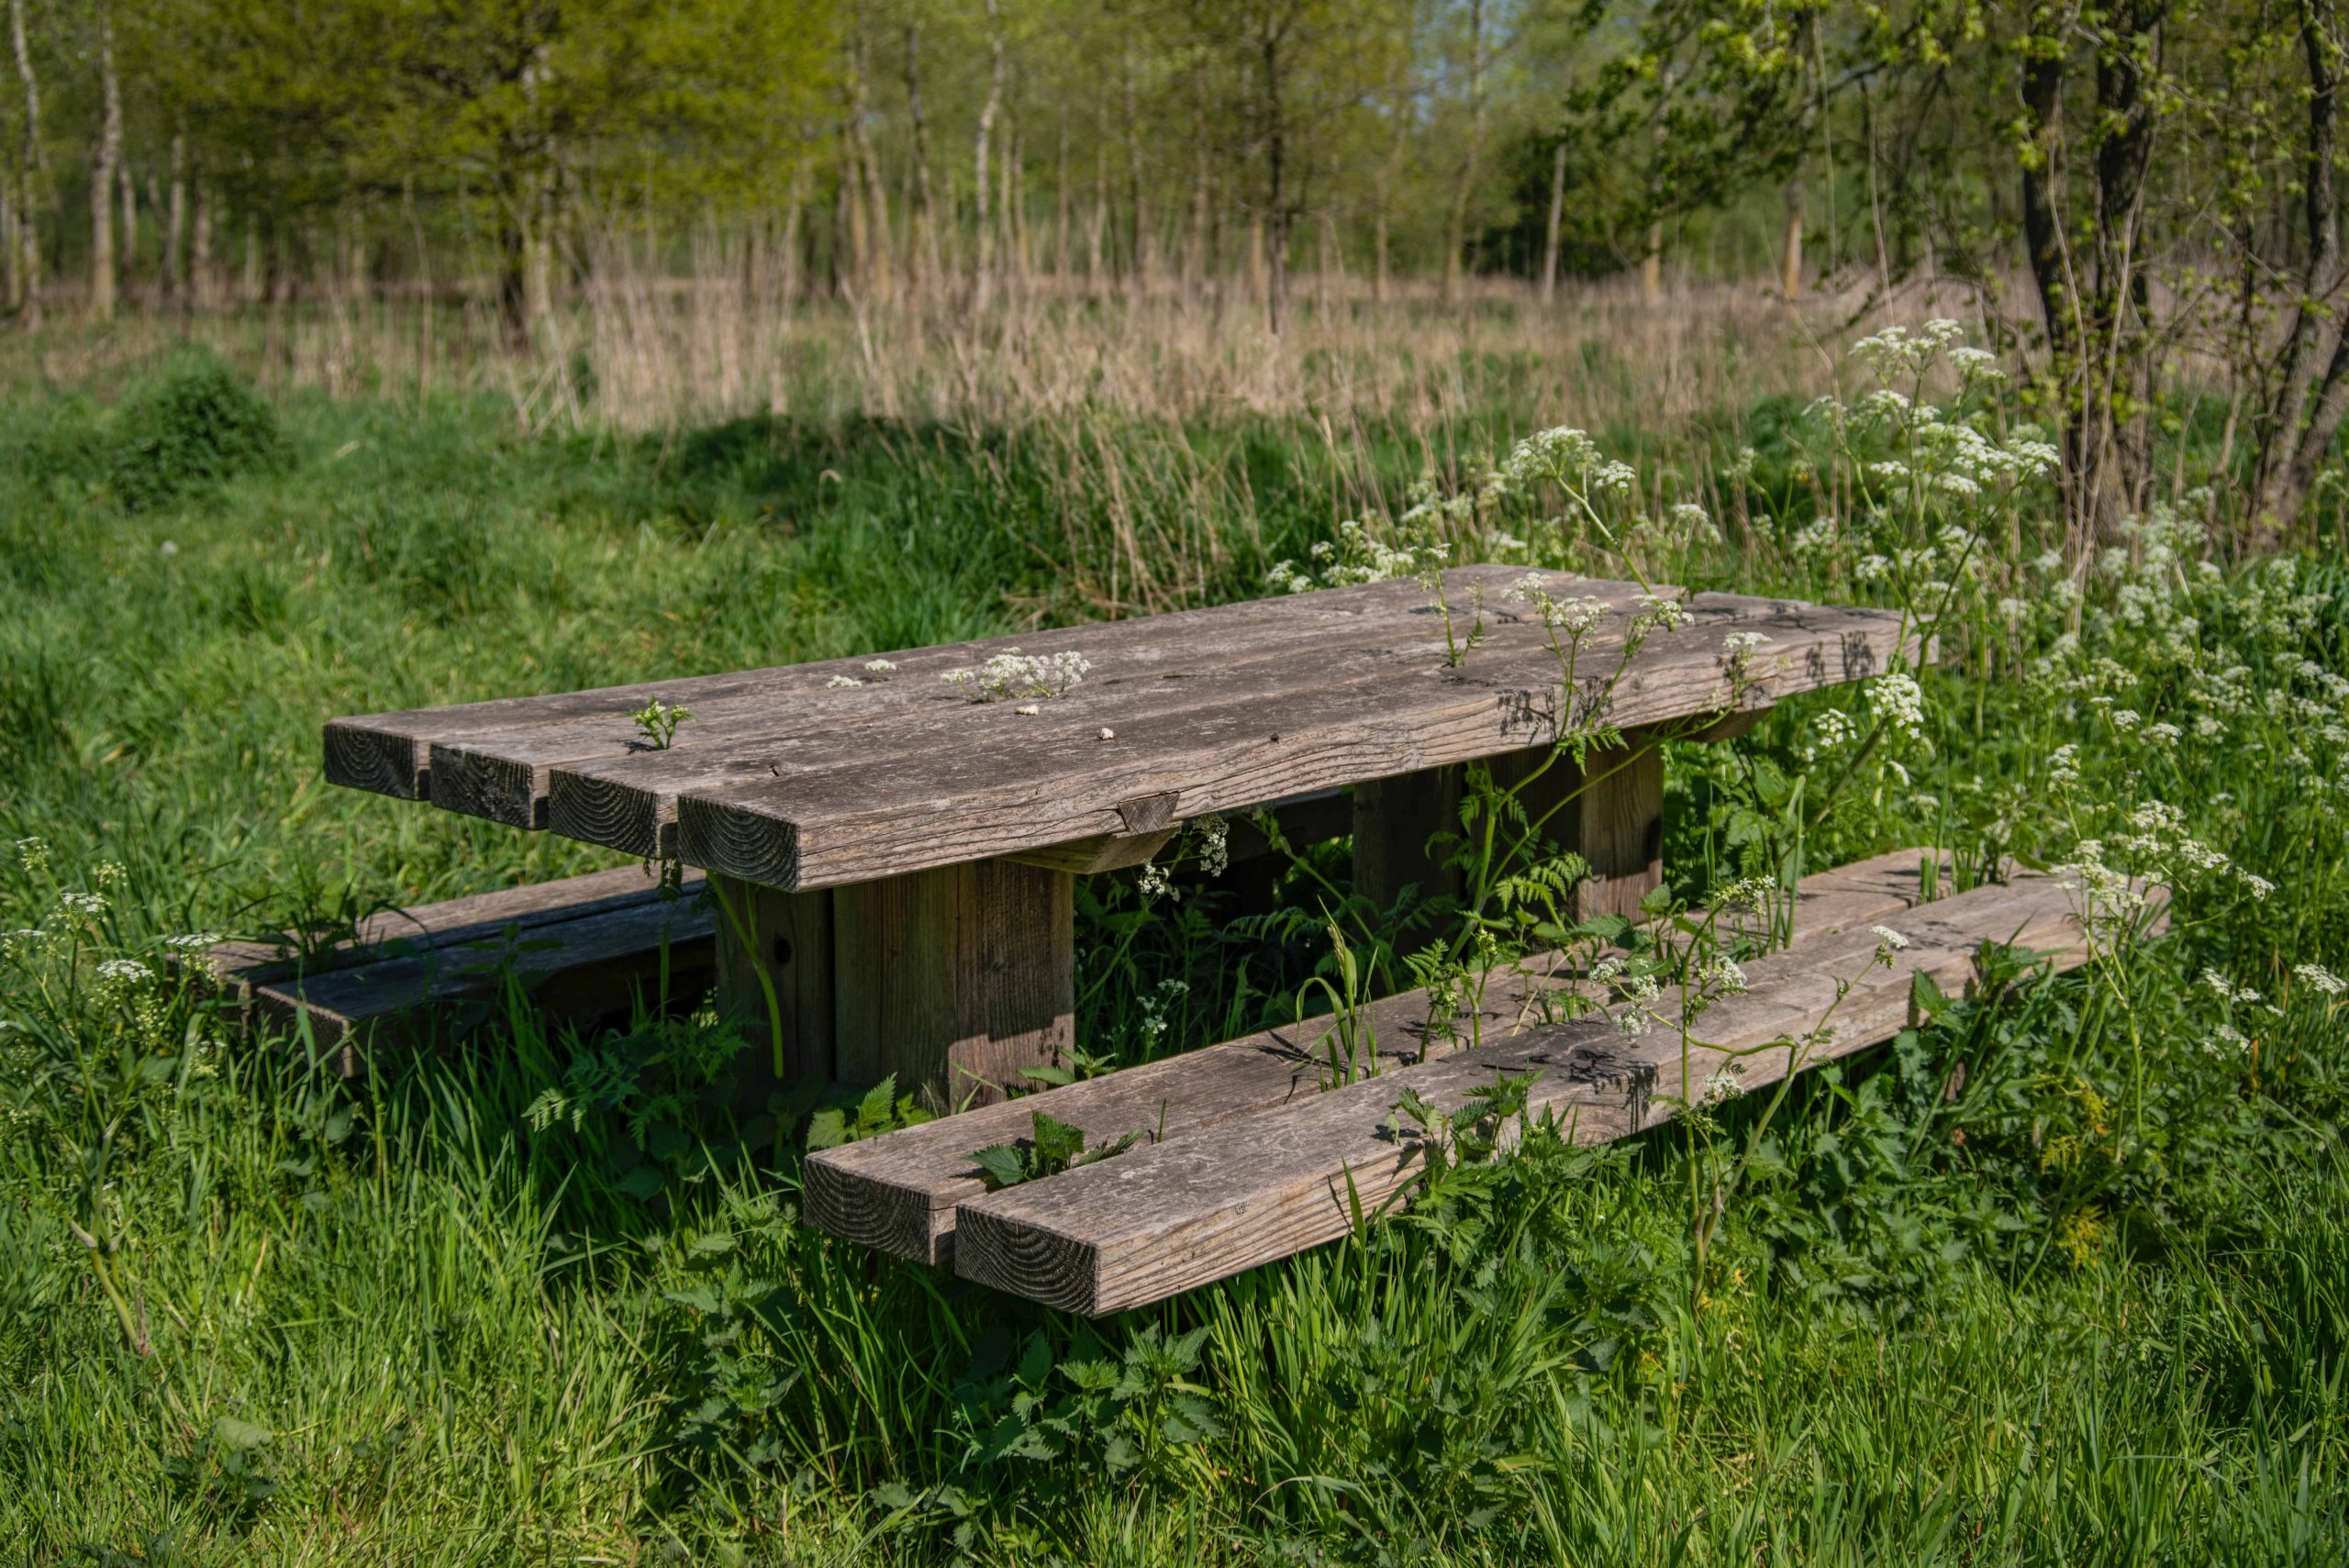 Is pressure treated wood safe for picnic table